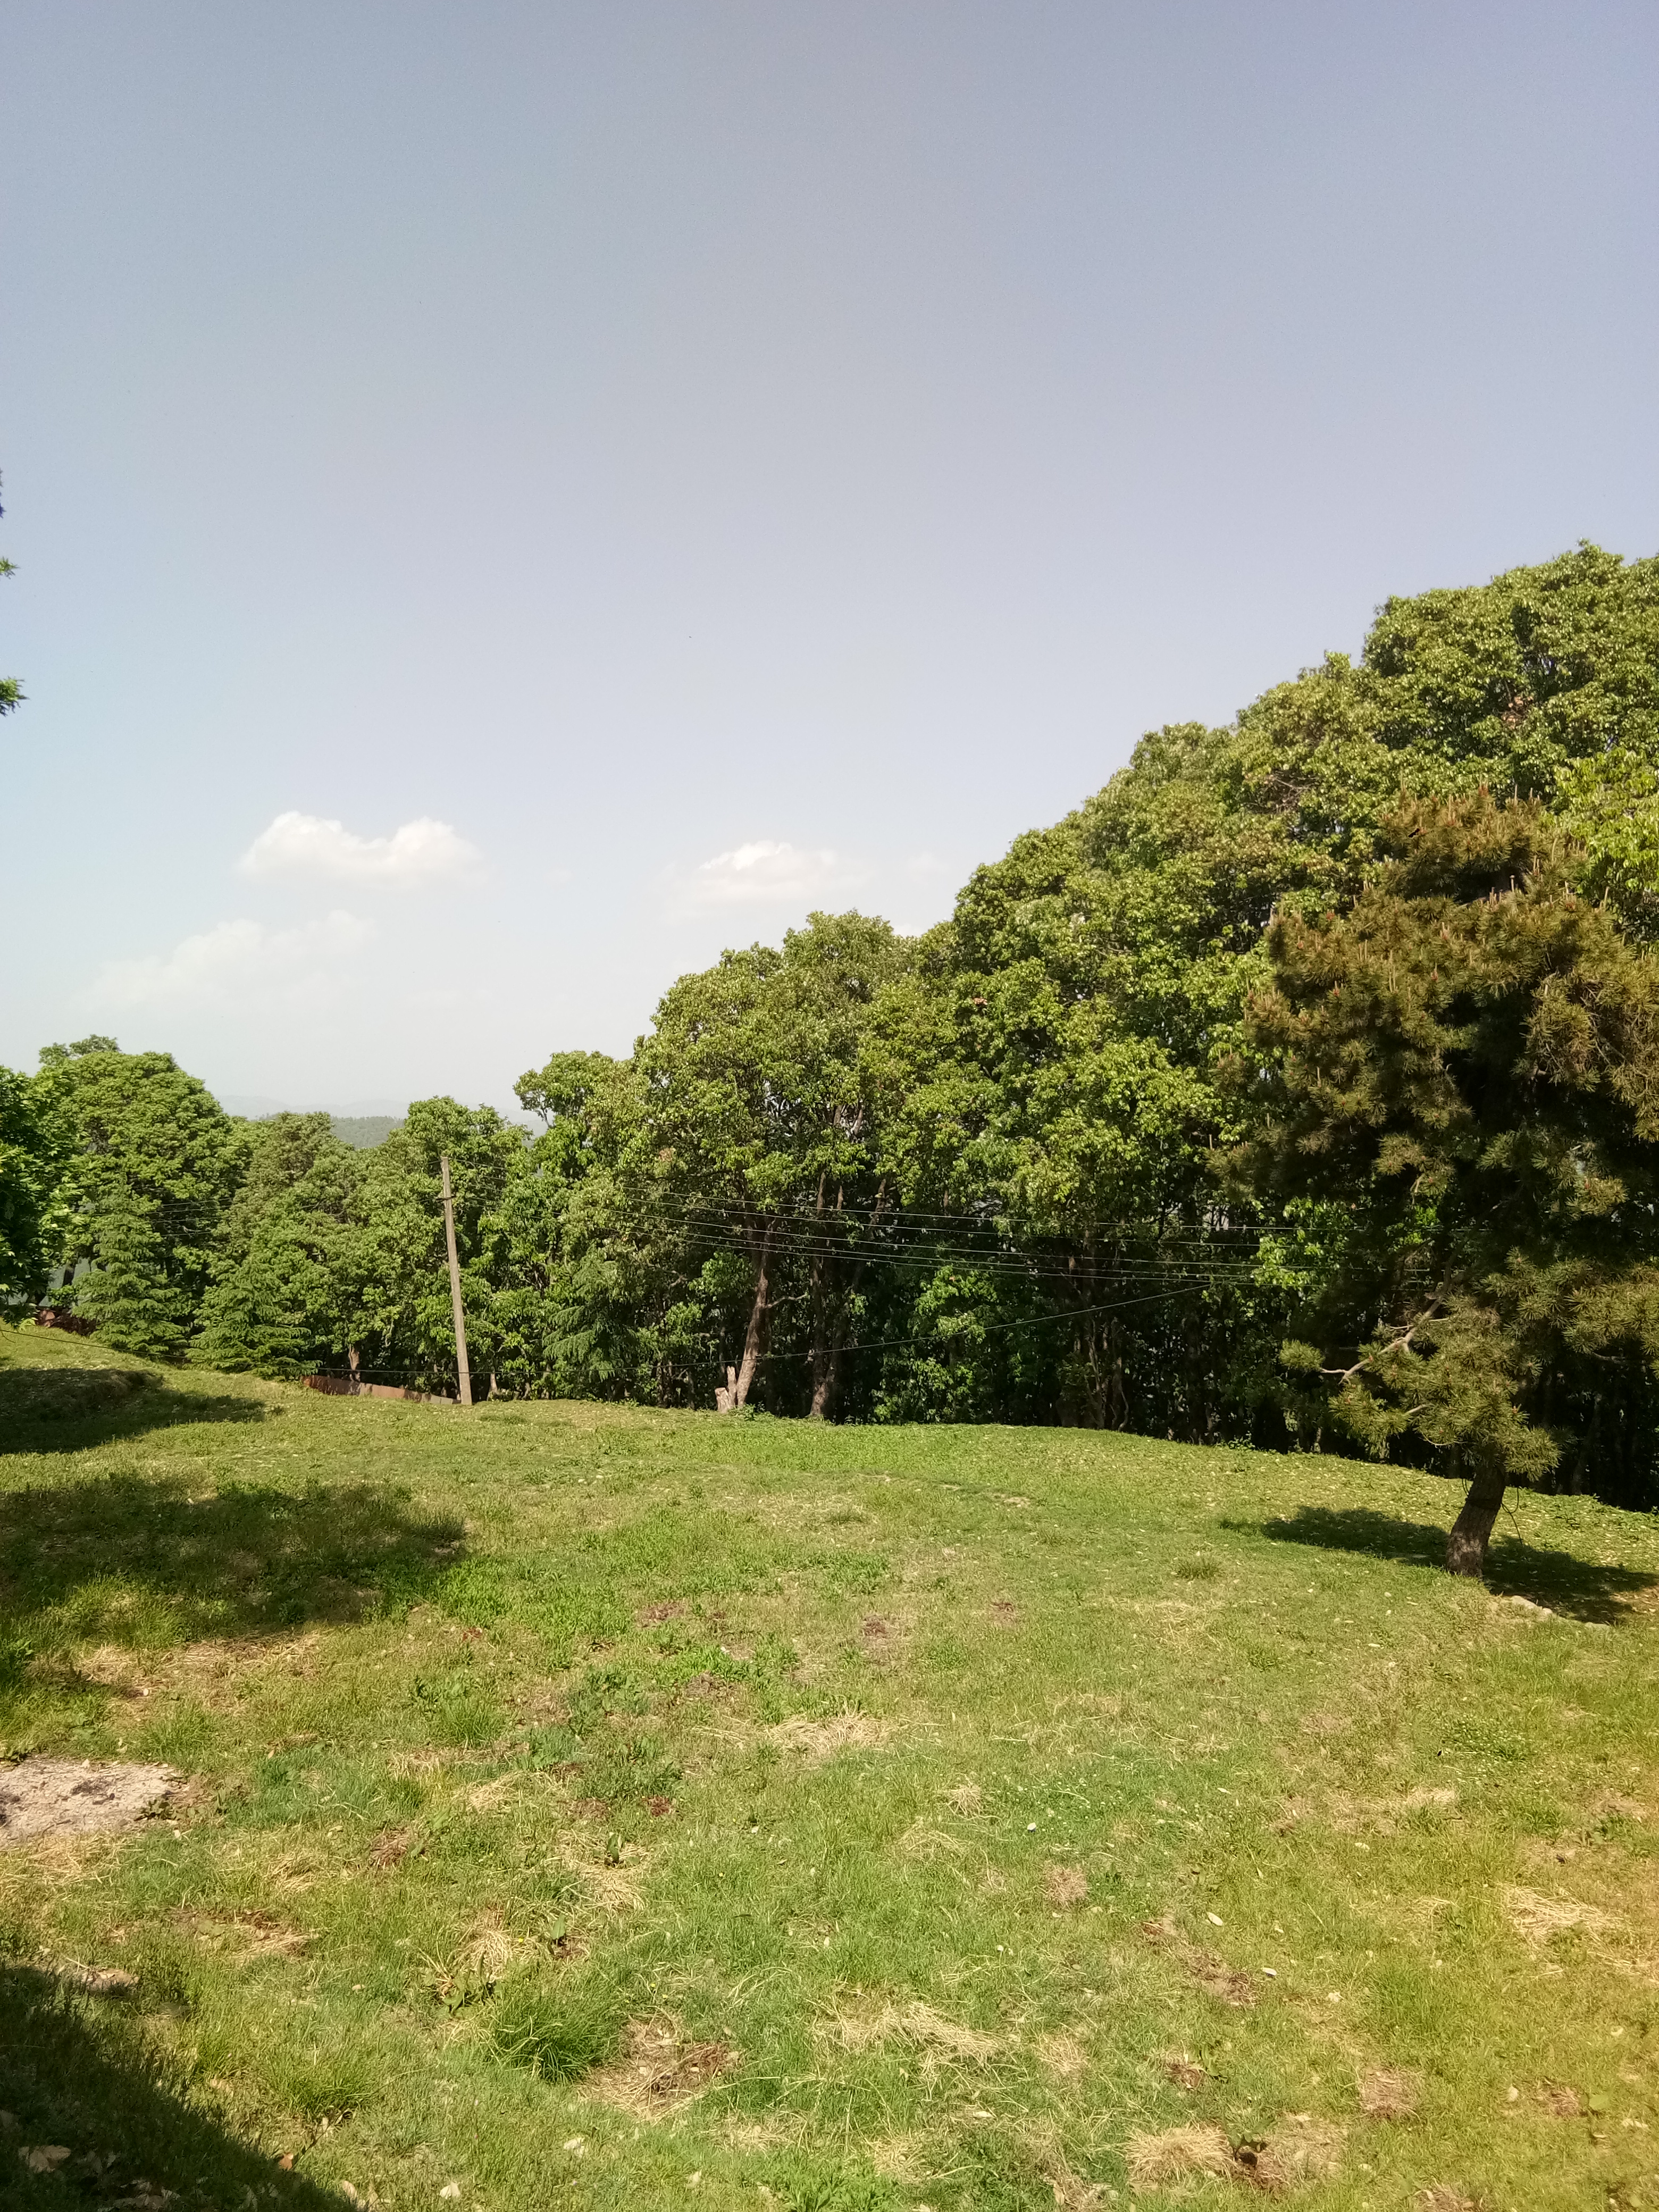 52 Bigha Land for sale at chail Himachal Pradesh — Drive in —- Hill top — Usable for  Hotel and Resort —- Total forest — Beautiful View — Price – 30 Cr